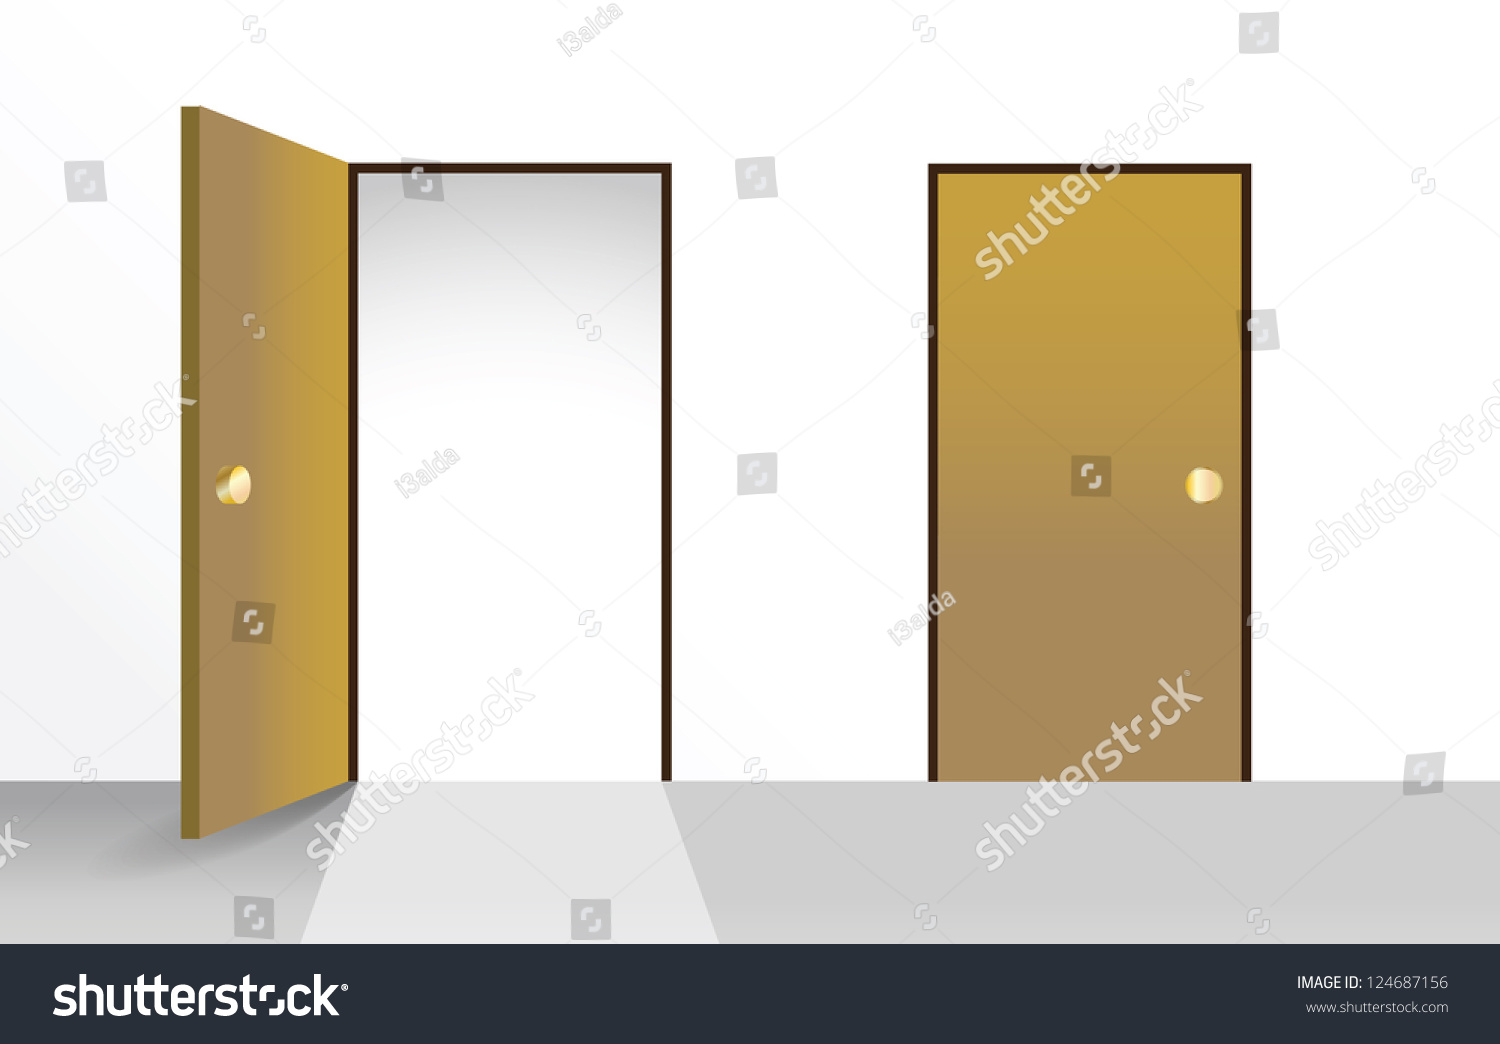 Open door closed door - Set Of Open And Closed Doors Illustration